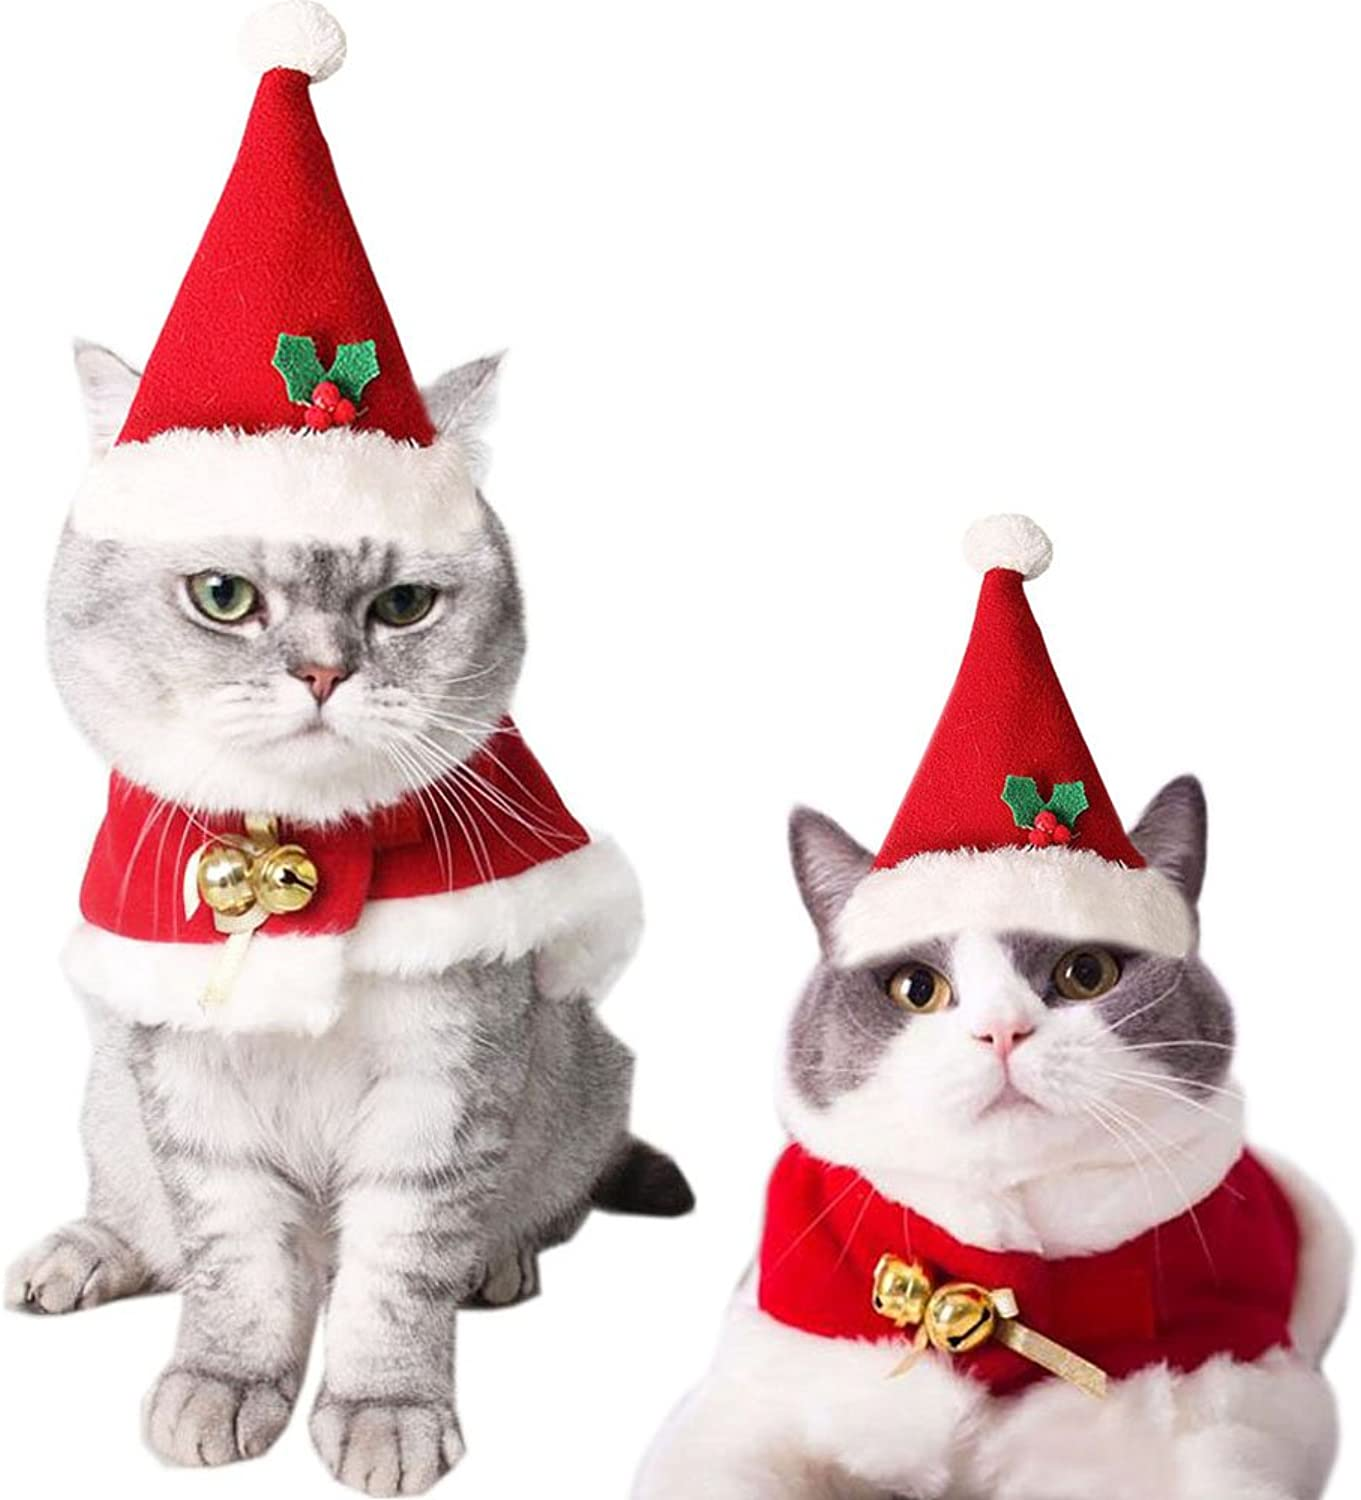 Bolbove Pet Christmas Hat and Santa Claus Cloak with Bells for Cats Puppies Outfit (Small)